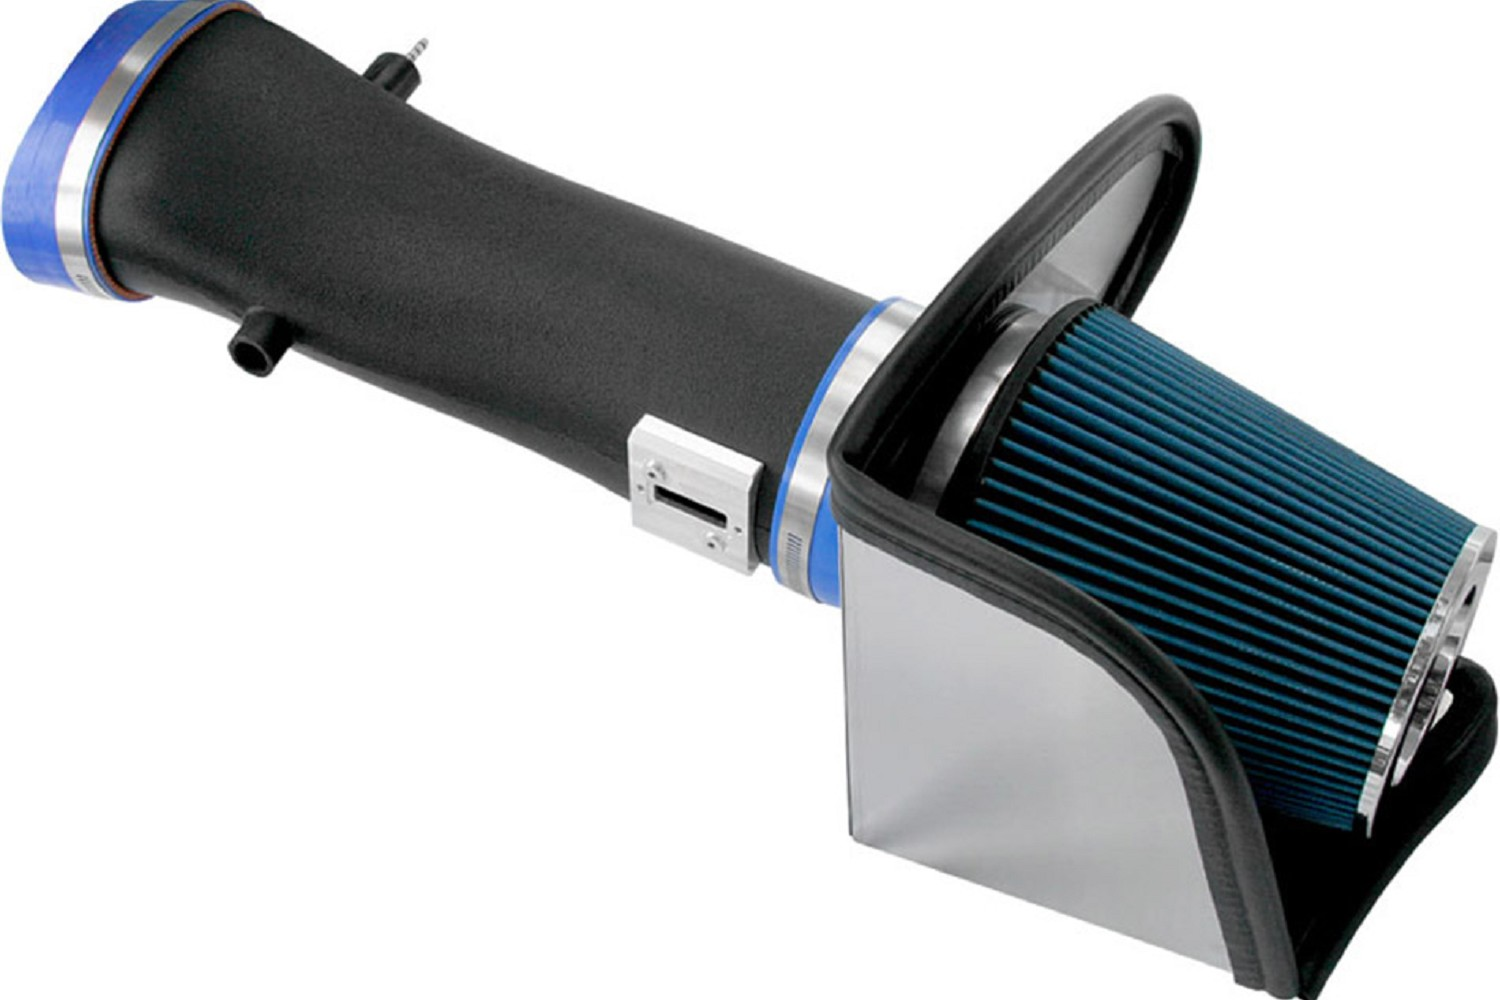 2007-2009 Shelby GT500 Steeda Cold Air Intake, Black Plastic